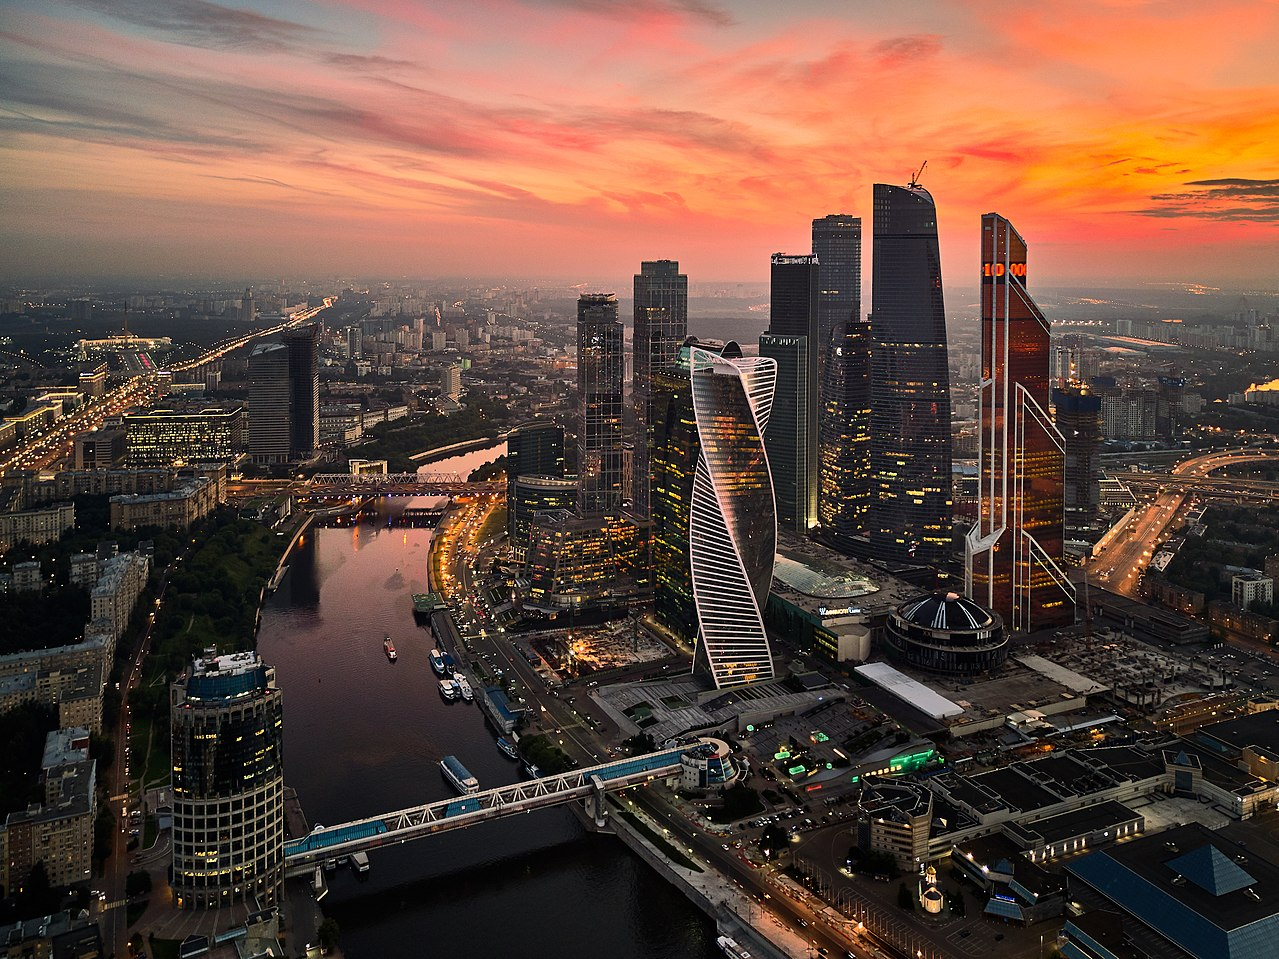 1280px-Moscow-City_36211143494